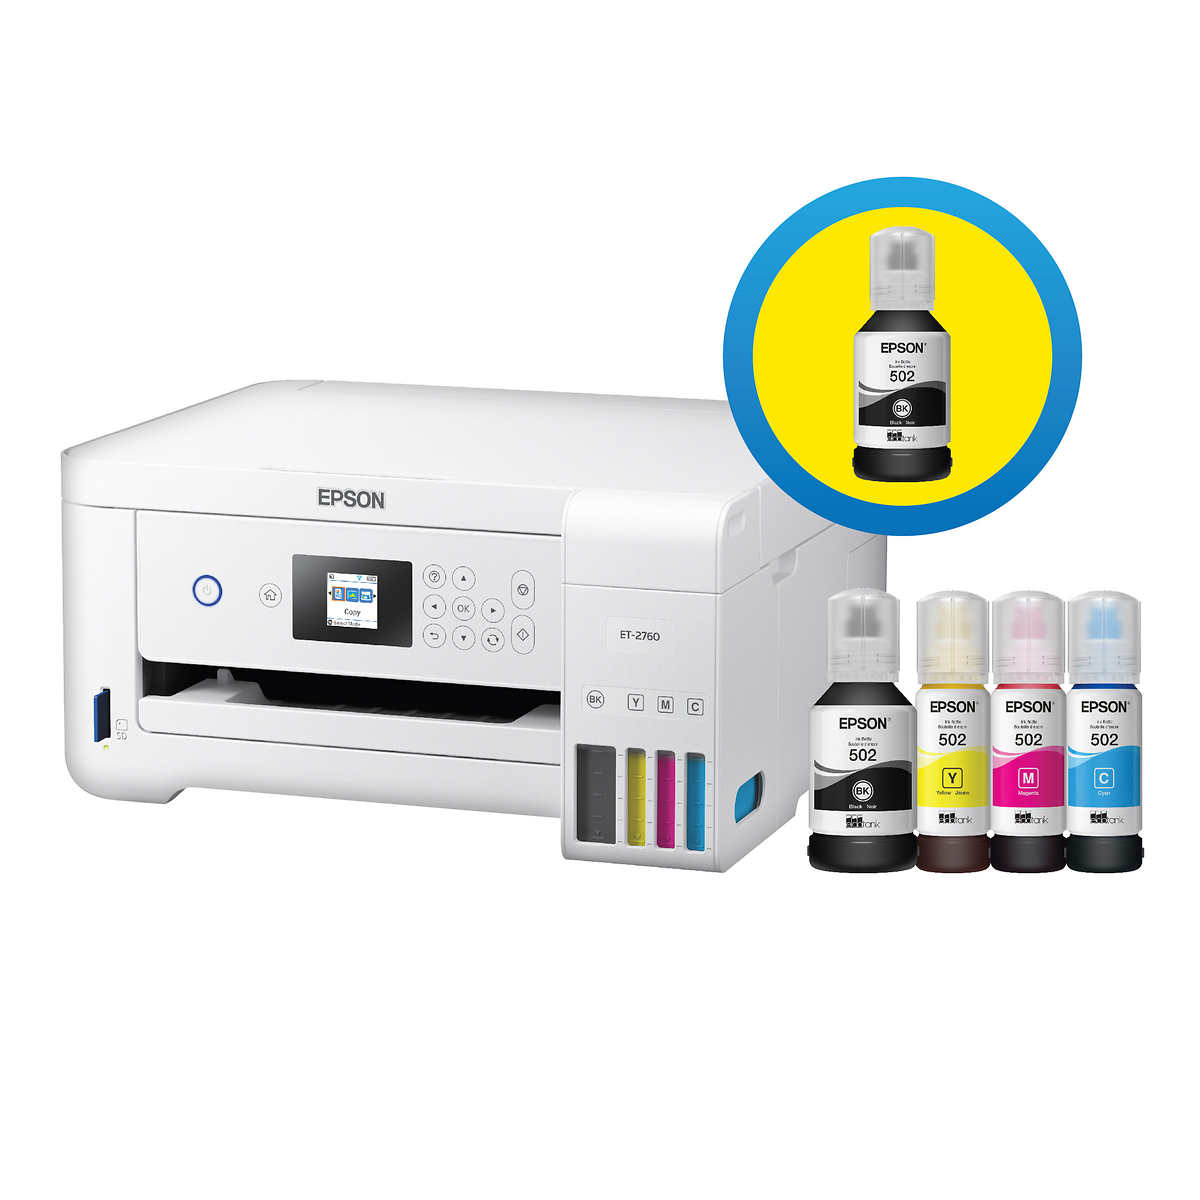 Epson Ecotank 2760 Special Edition All In One Printer With Bonus Black Ink